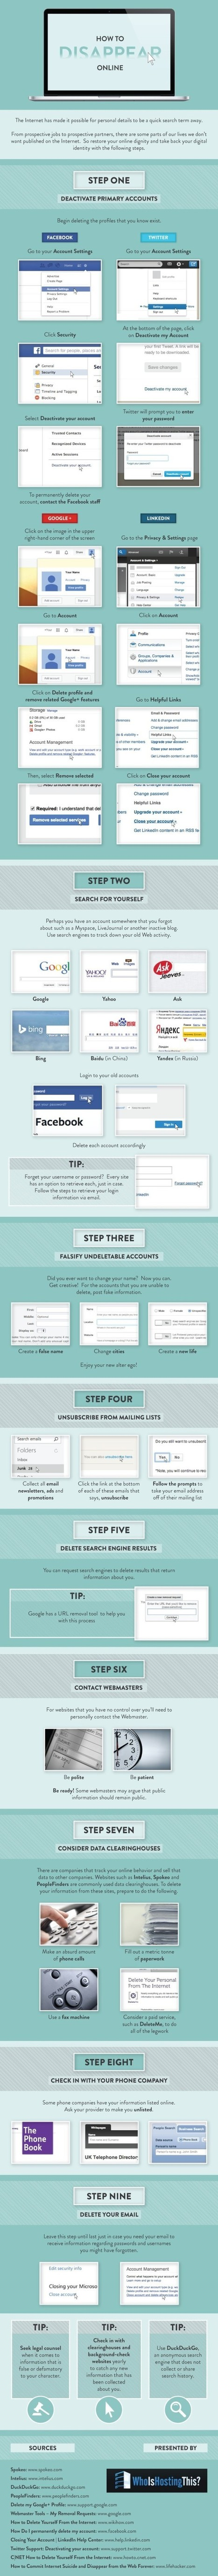 How to Delete Yourself from the #Internet [Infographic] #Privacy #CNIL | IT (Systems, Networks, Security) | Scoop.it